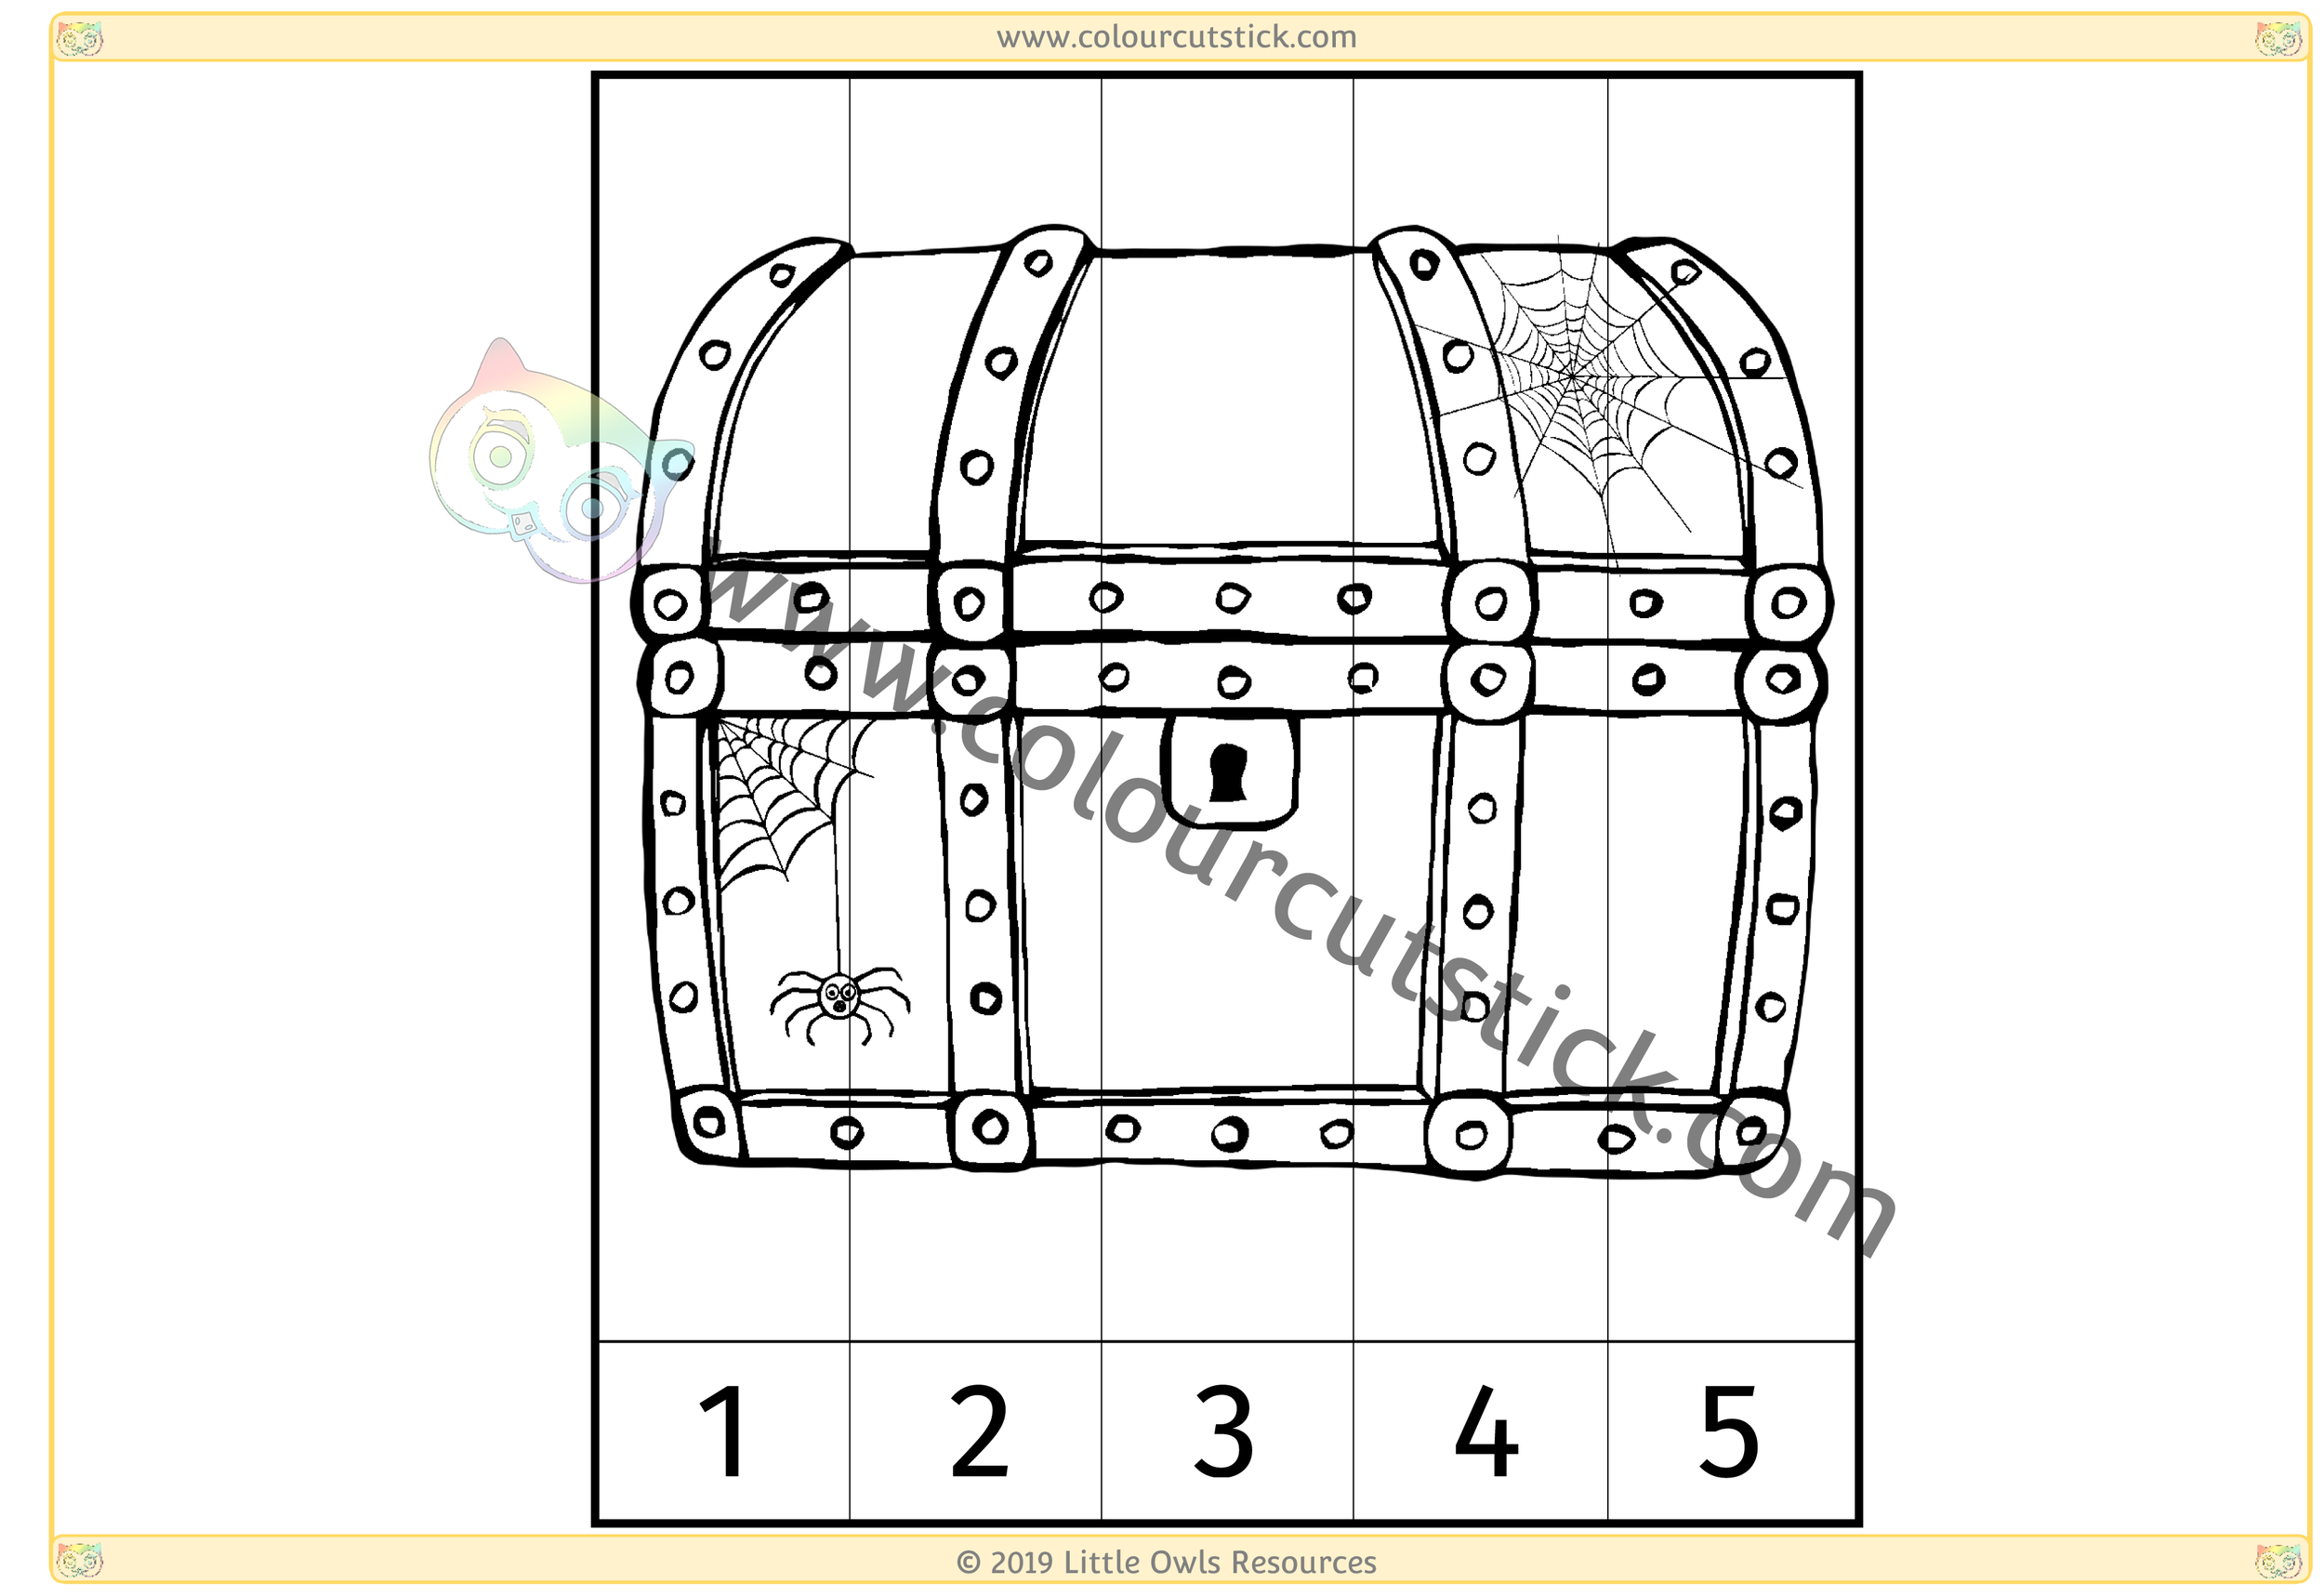 Spooky Chest Number Slice Puzzle 1-5 -